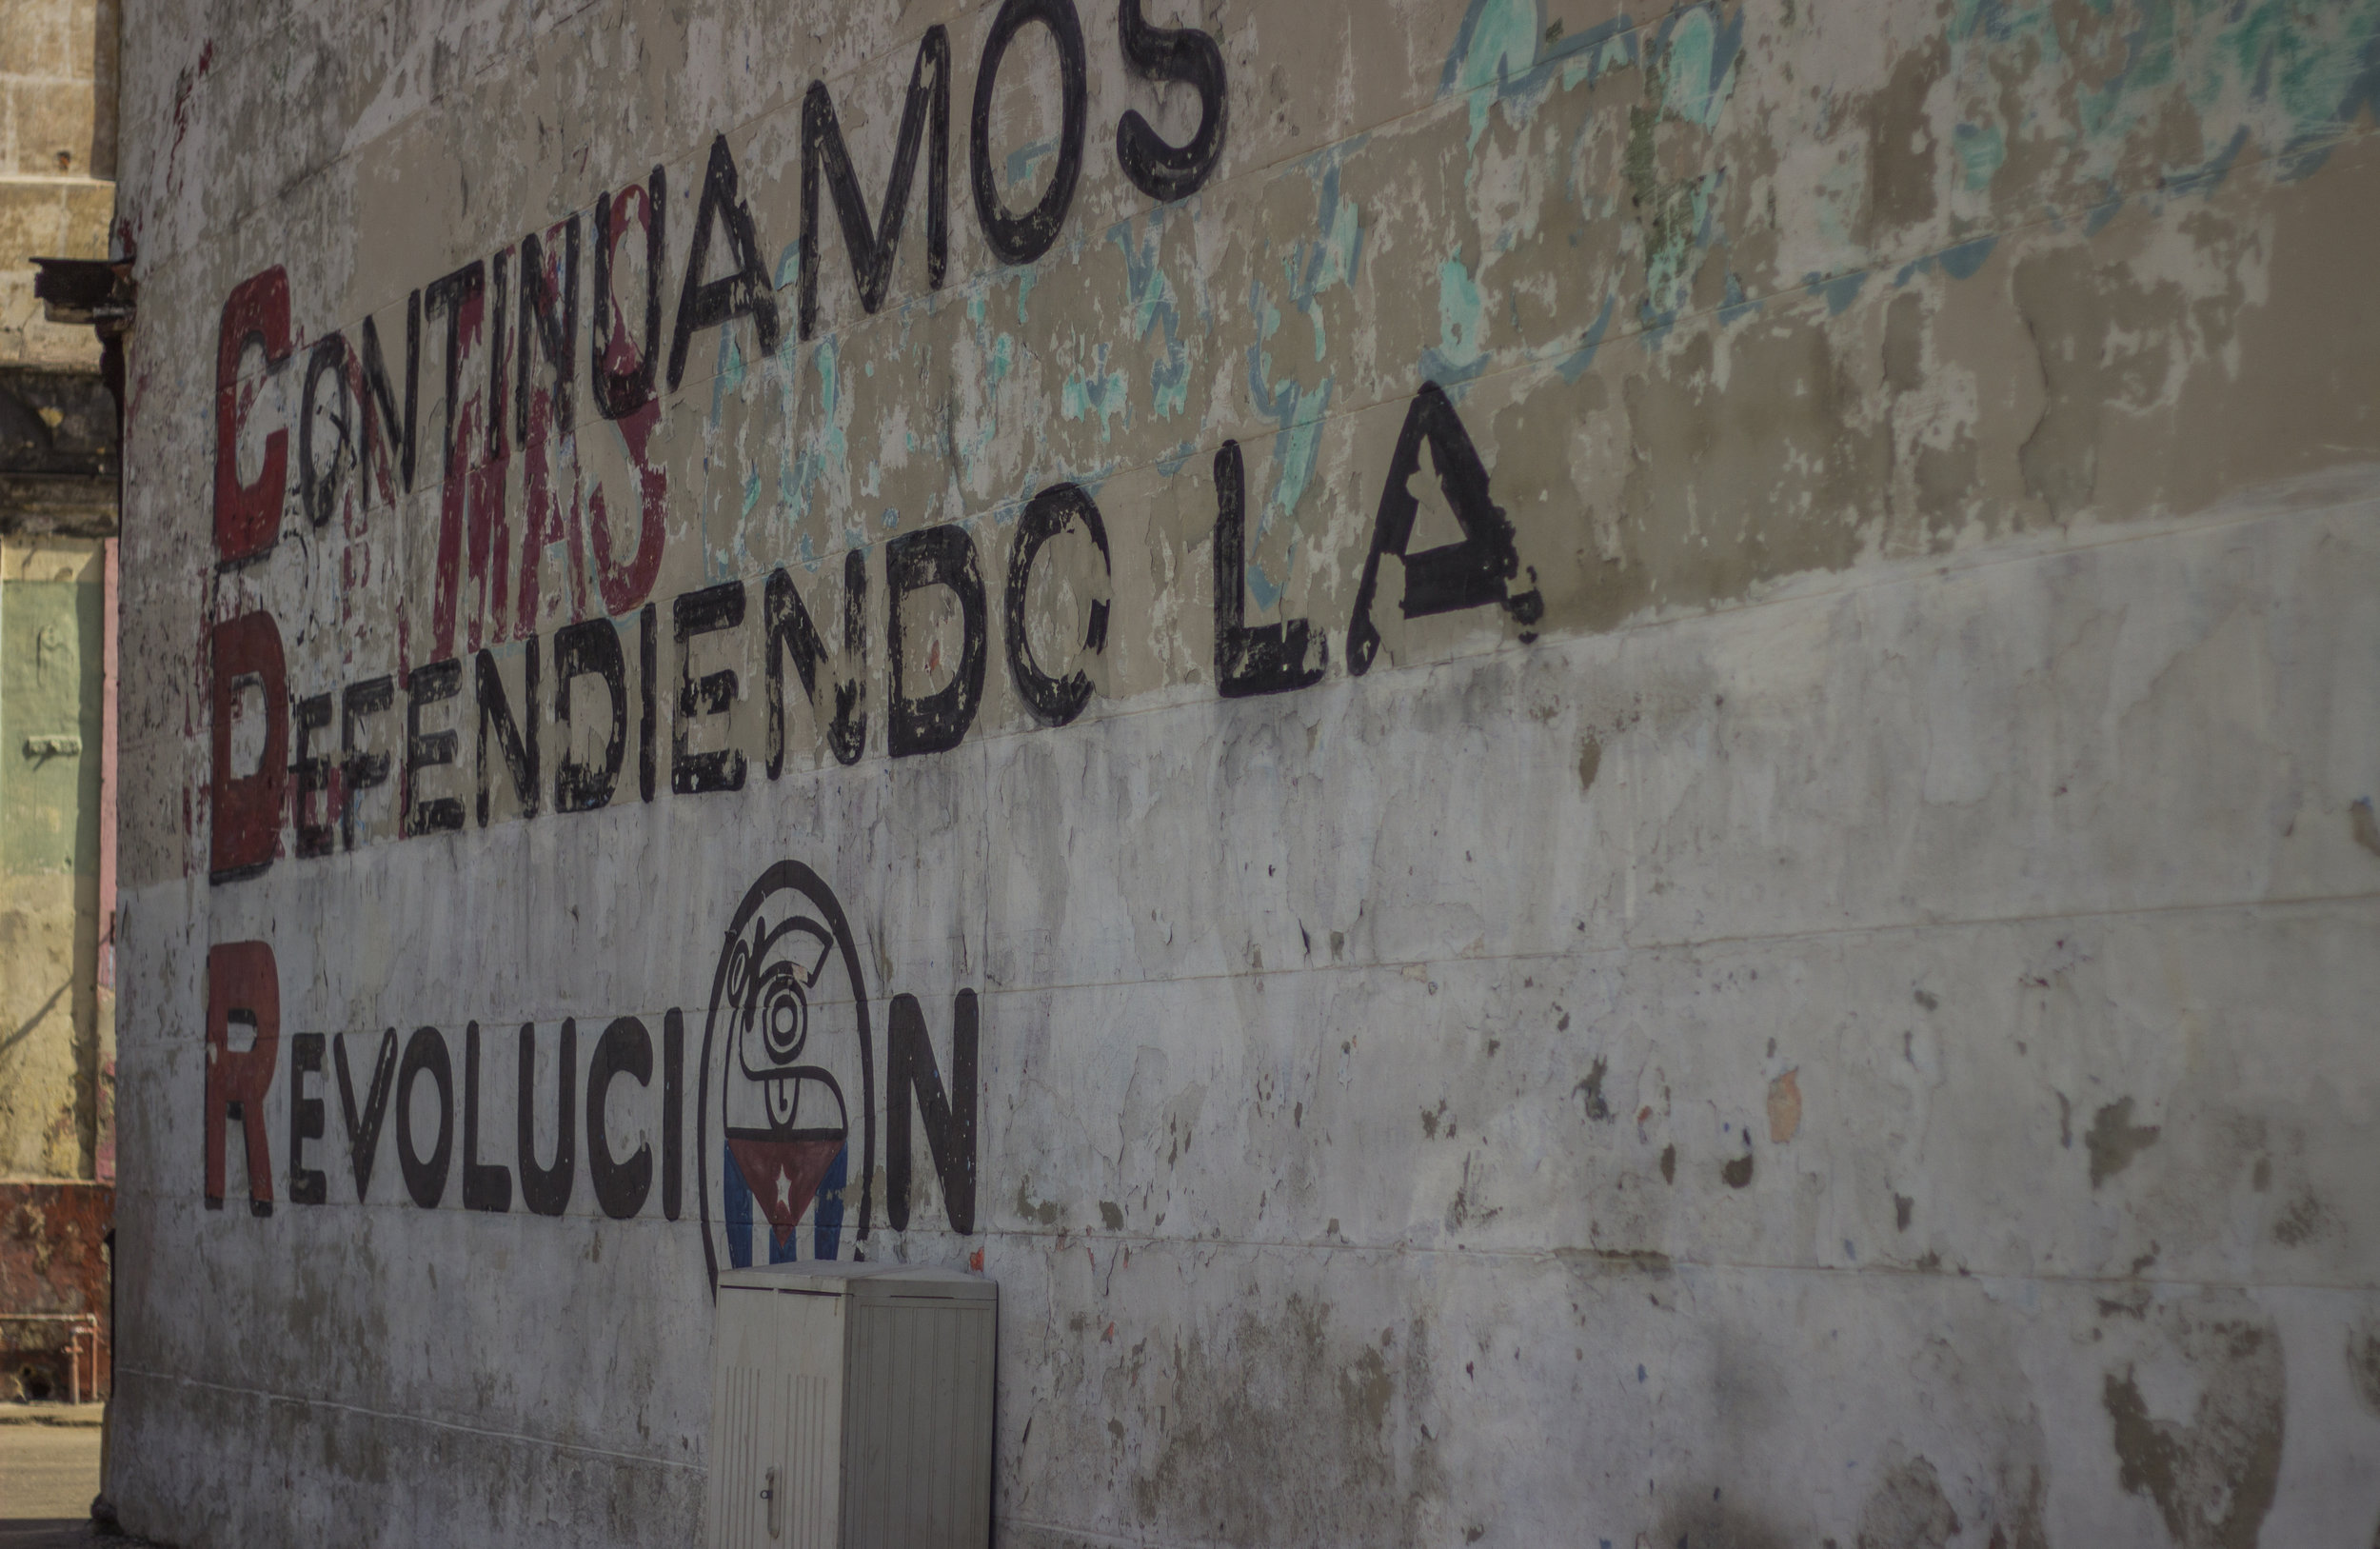 A message from the CDR ( Comités de Defensa de la Revolución),  a network of committees within the country that exist to help report counter-revolutionary activity throughout Cuba.